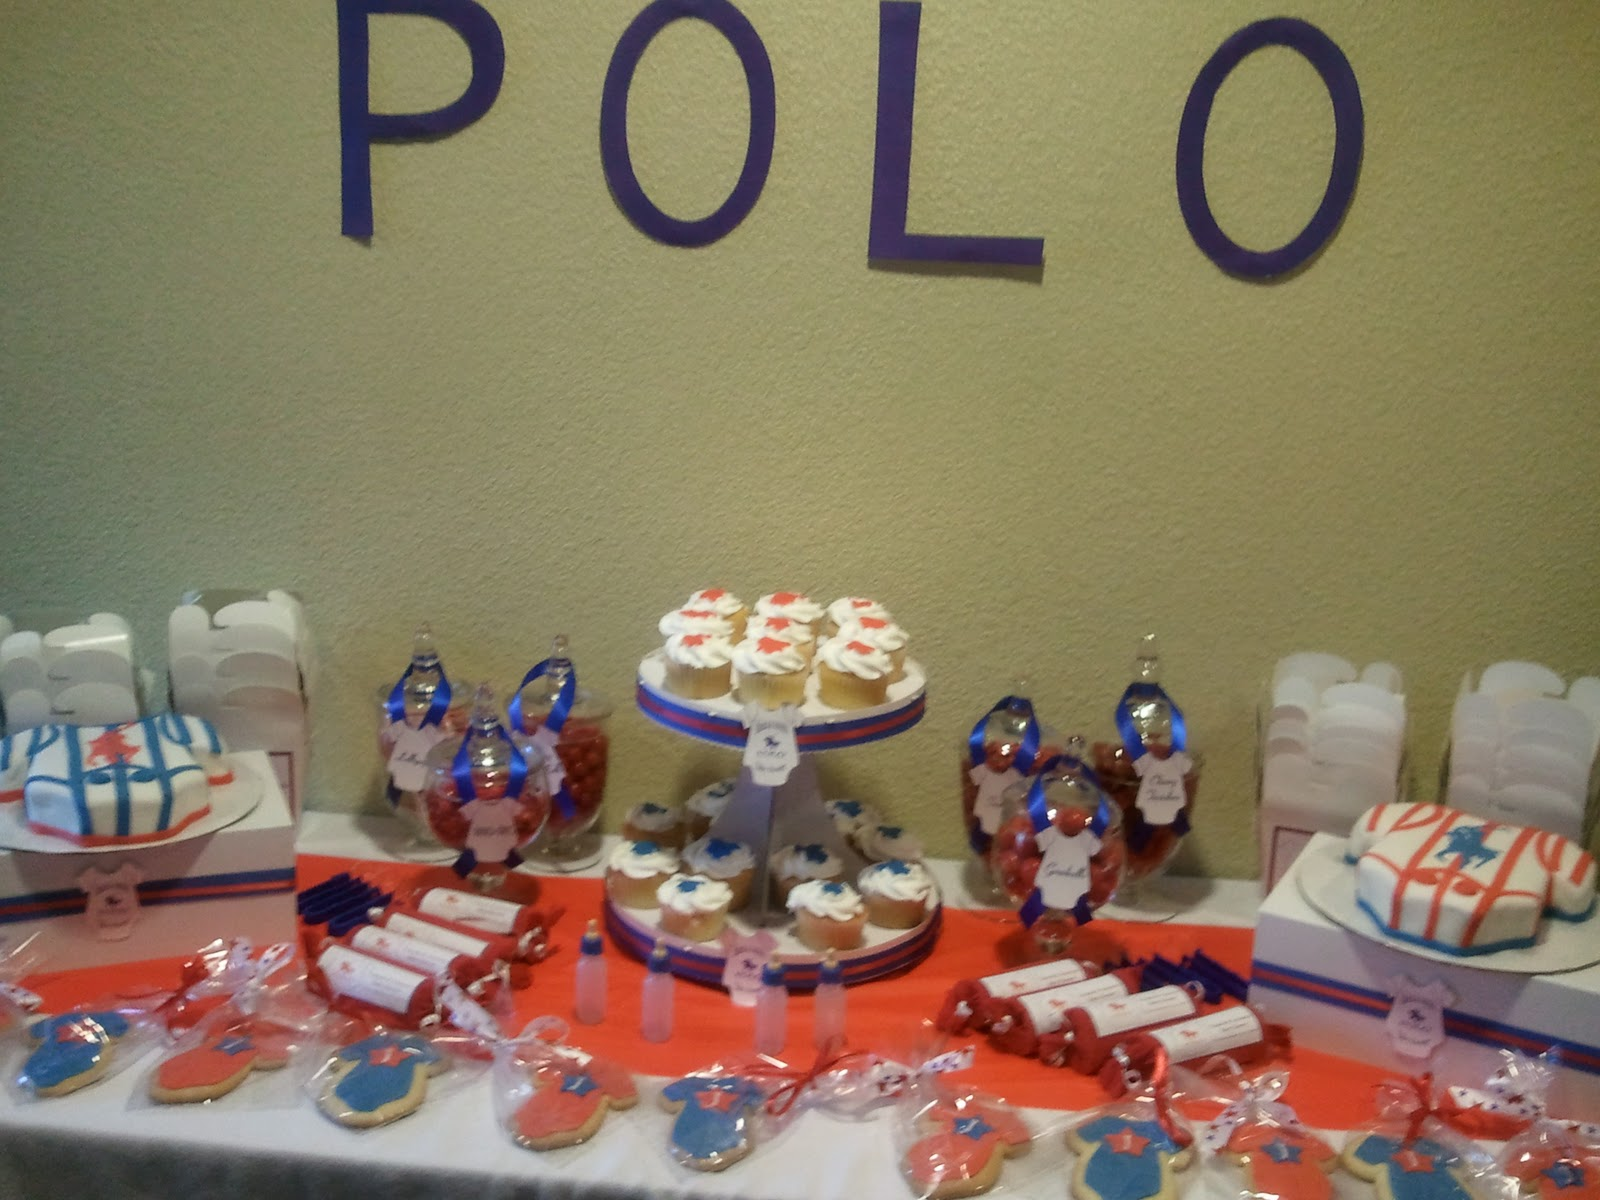 event design and planning baby shower ralph lauren polo theme